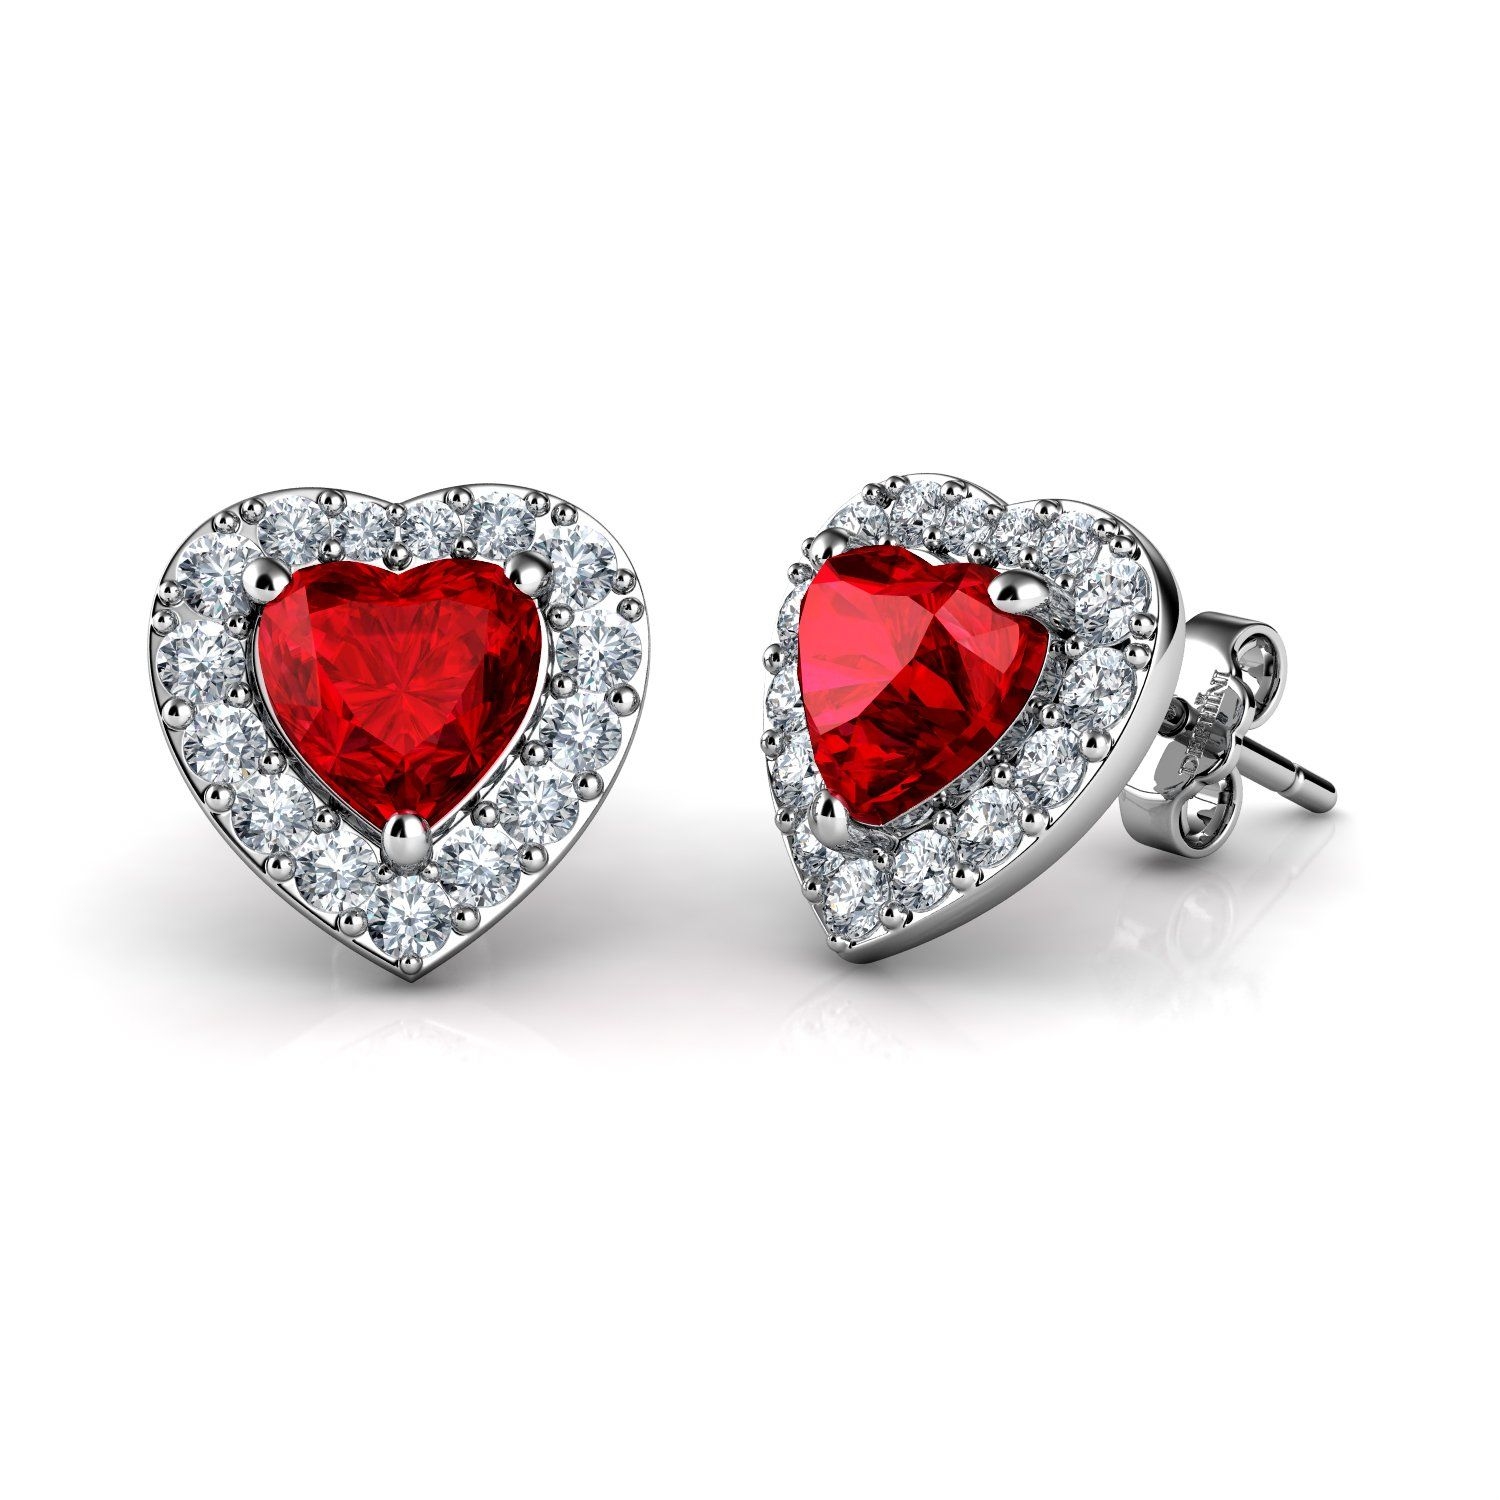 Dephini Red Heart Earrings 925 Sterling Silver Stud